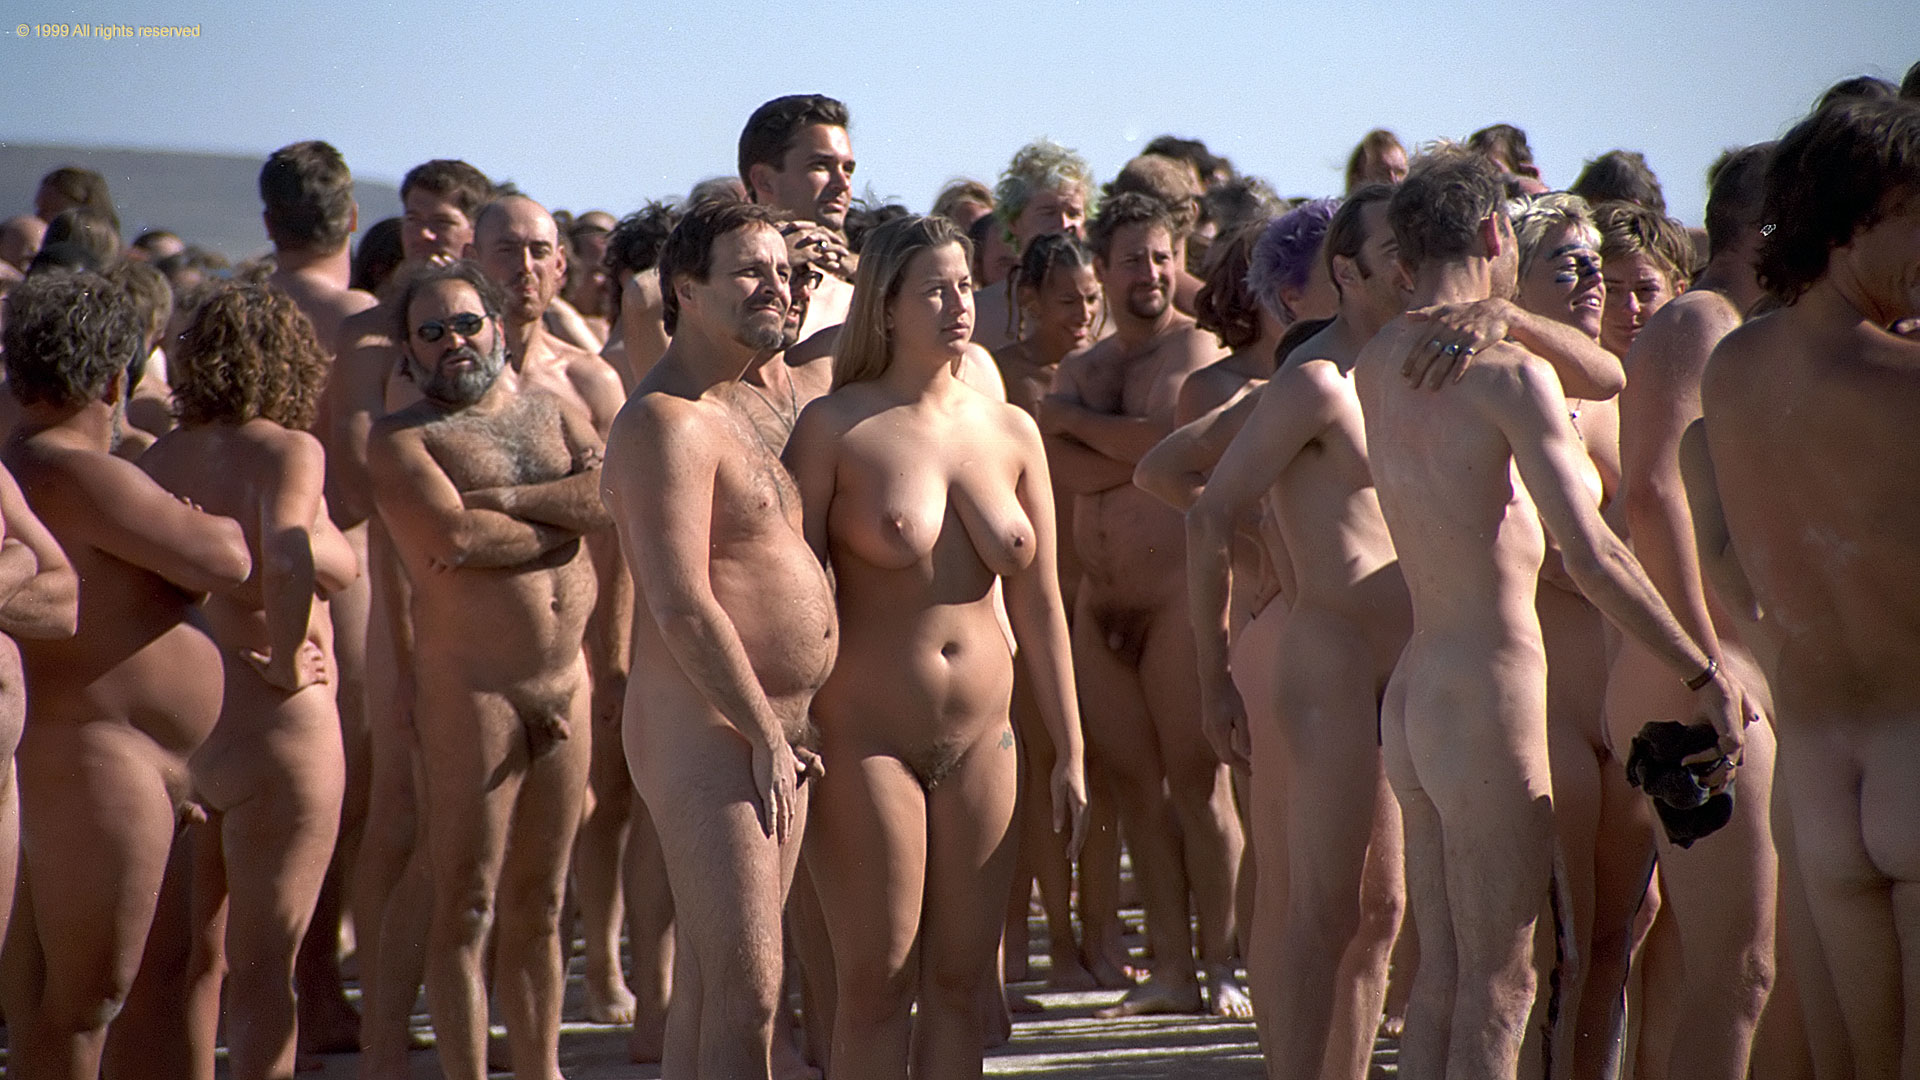 Understood nudes at burning man ebony